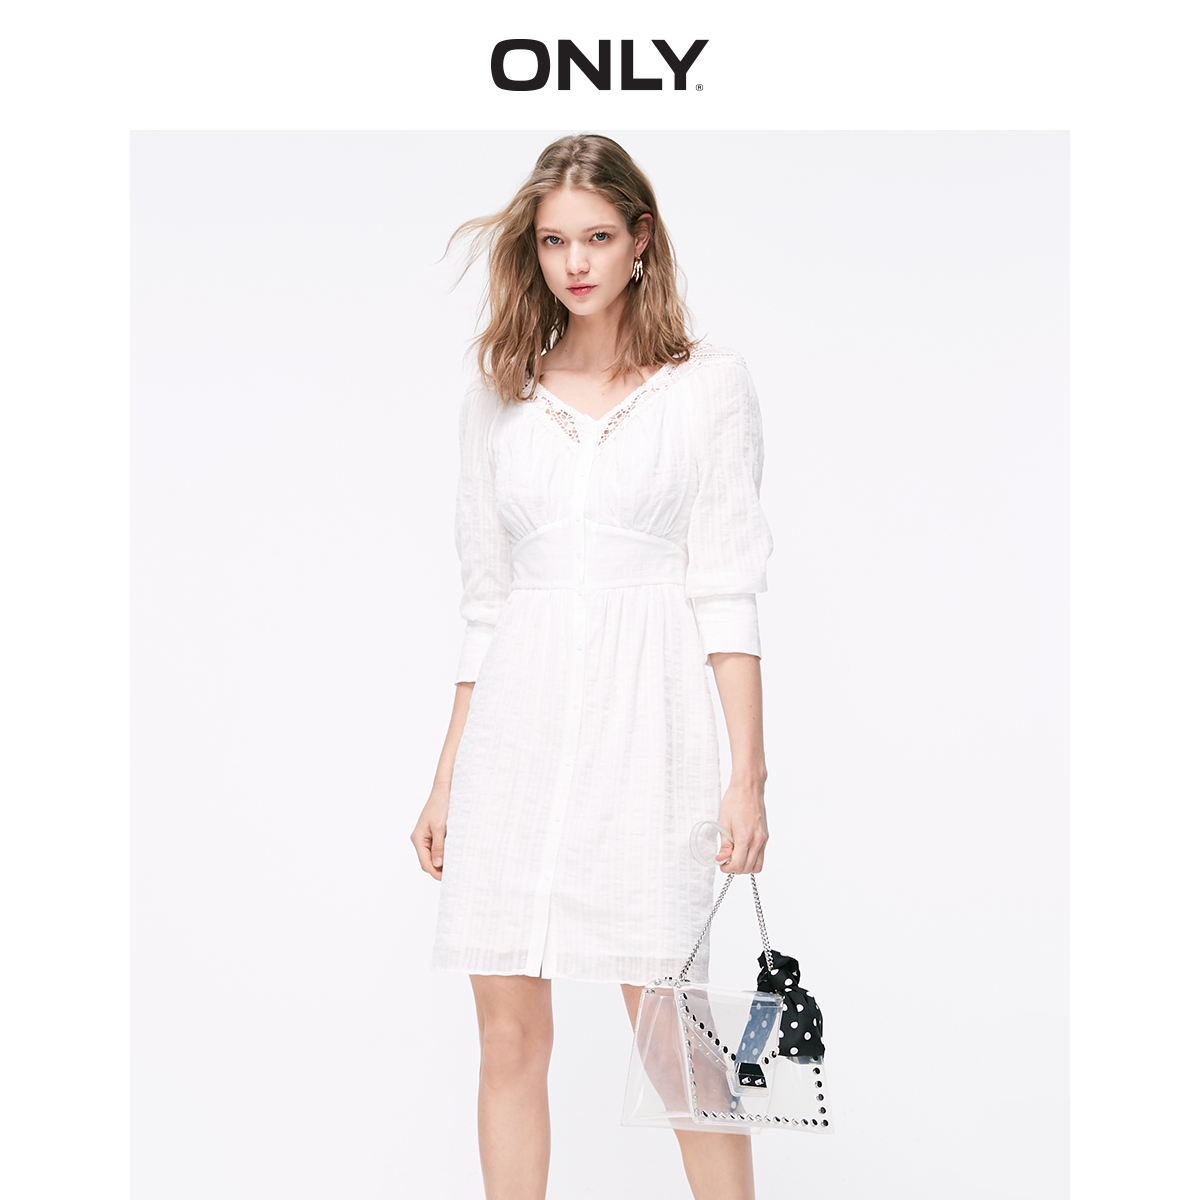 ONLY Women's 100% Cotton Cinched Waist Lace Dress   119107560